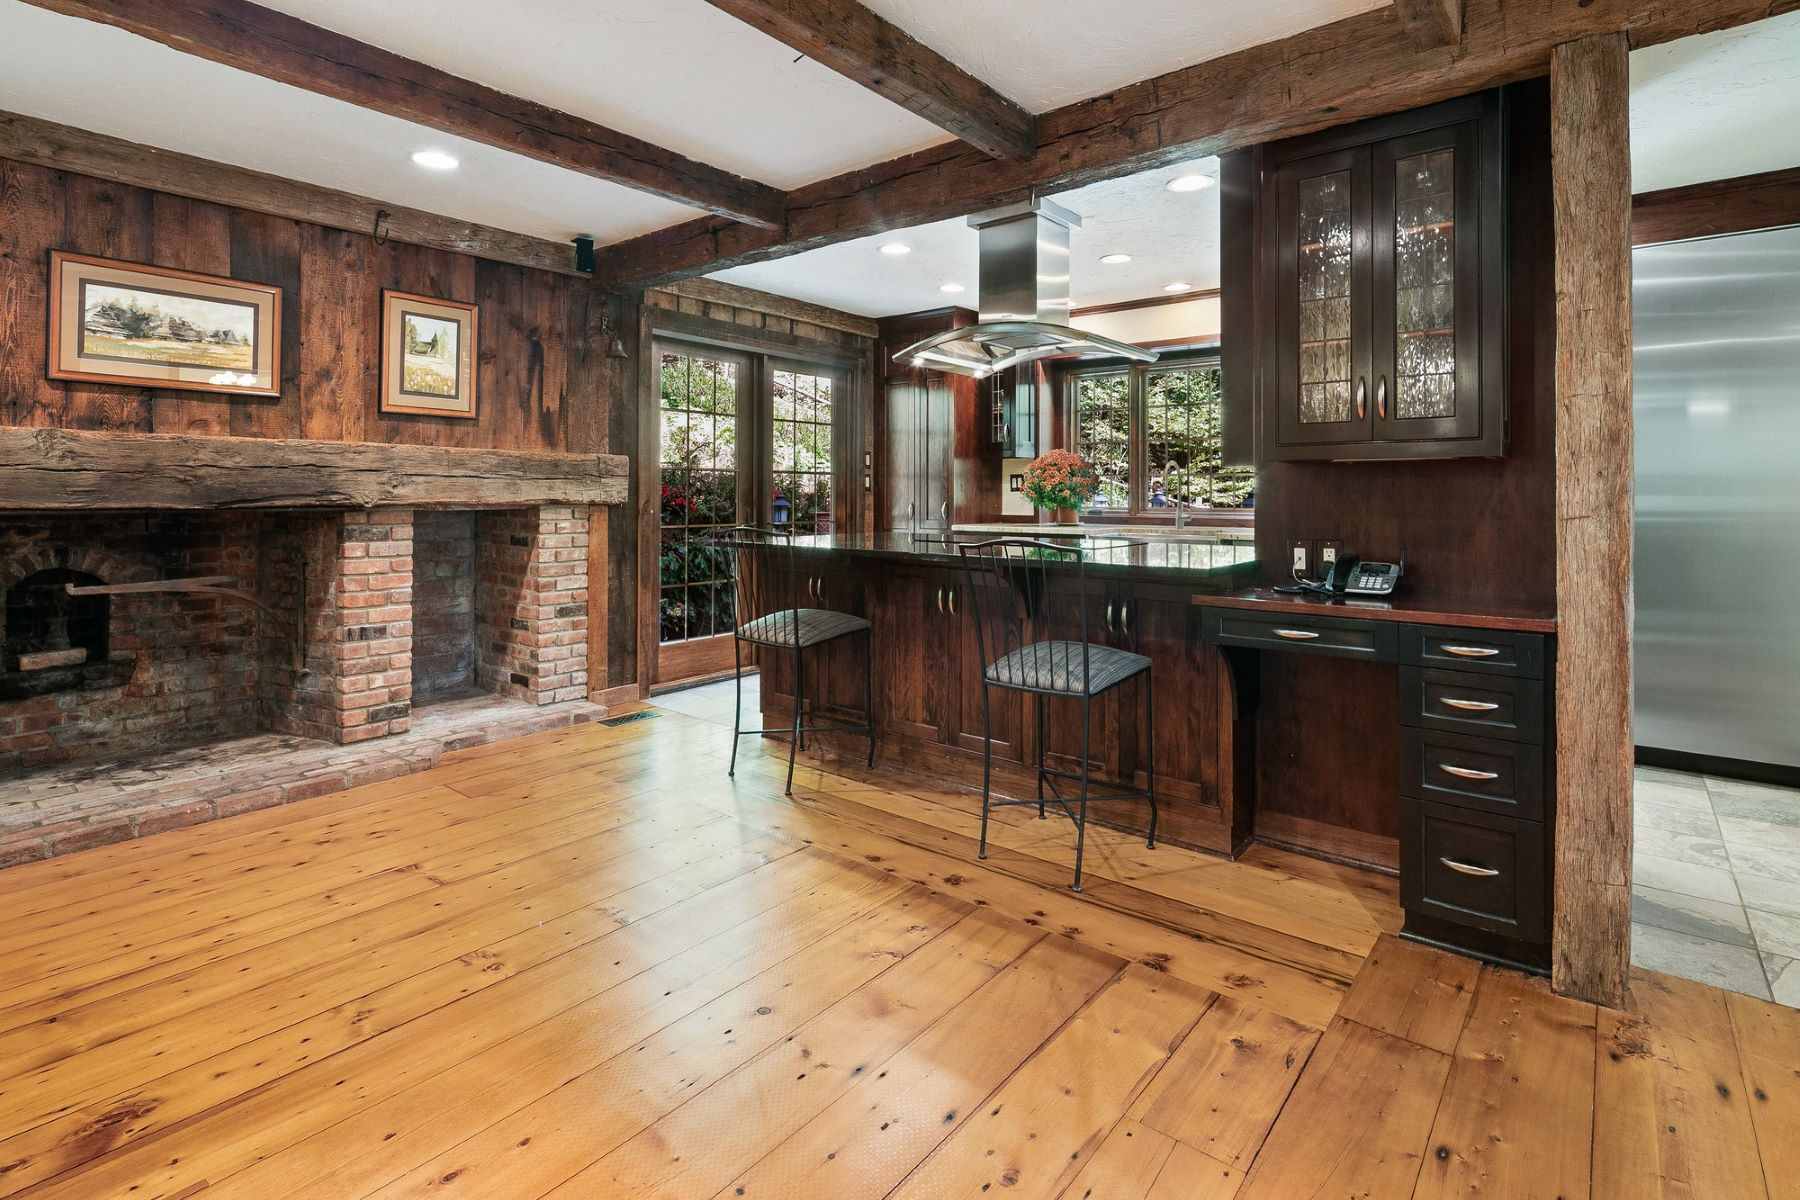 Single Family Homes for Sale at Charming Salt Box 30 Woodland Road Mendham, New Jersey 07945 United States